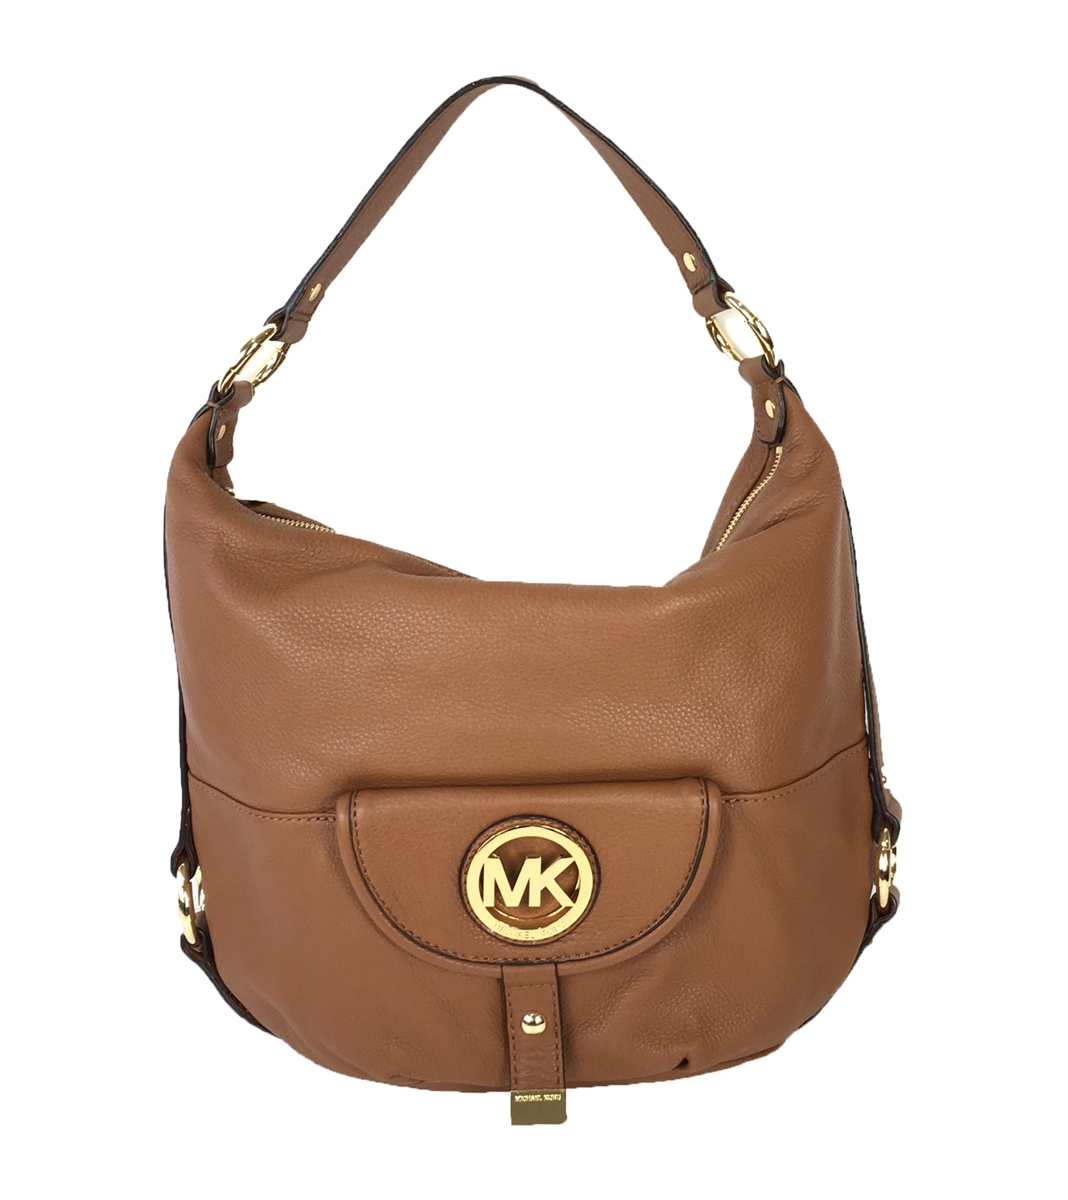 1c5721ae956b Michael Kors Fulton Large Leather Shoulder Bag